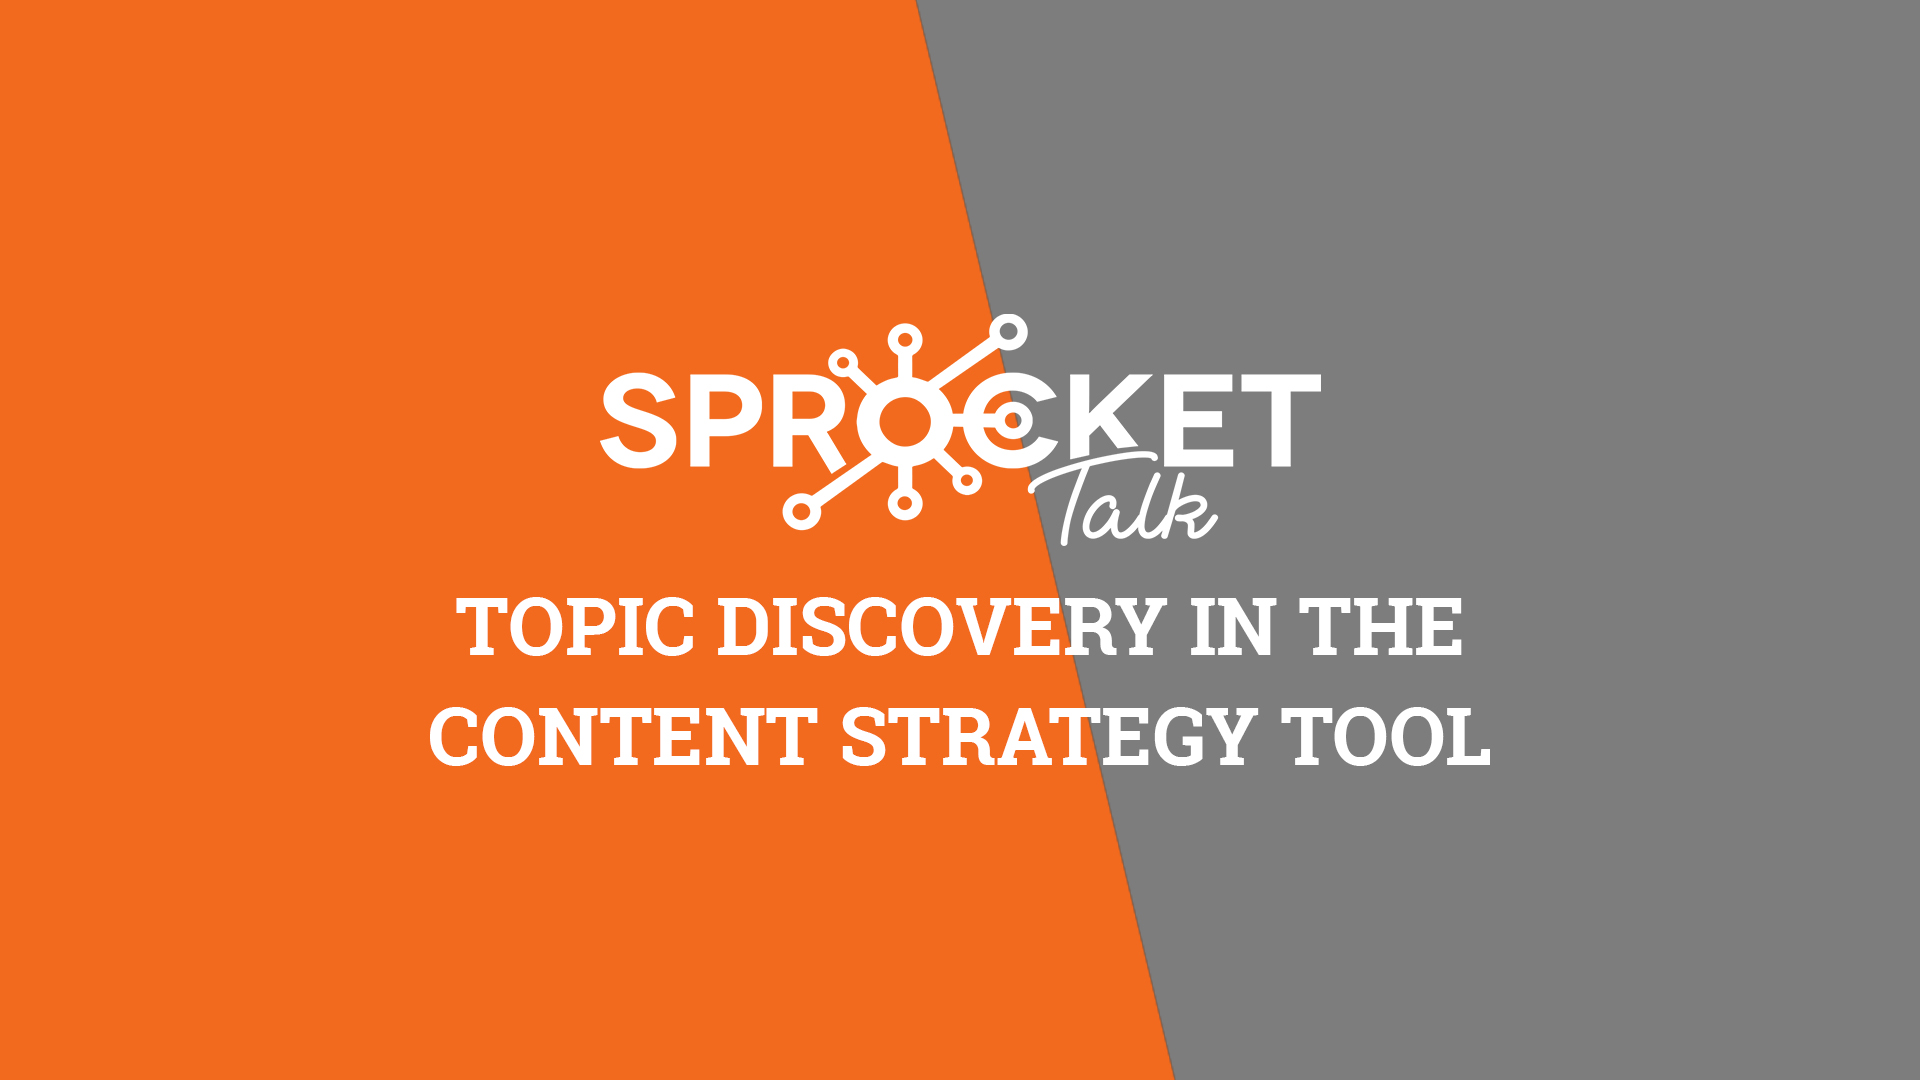 Topic Discovery in the Content Strategy Tool